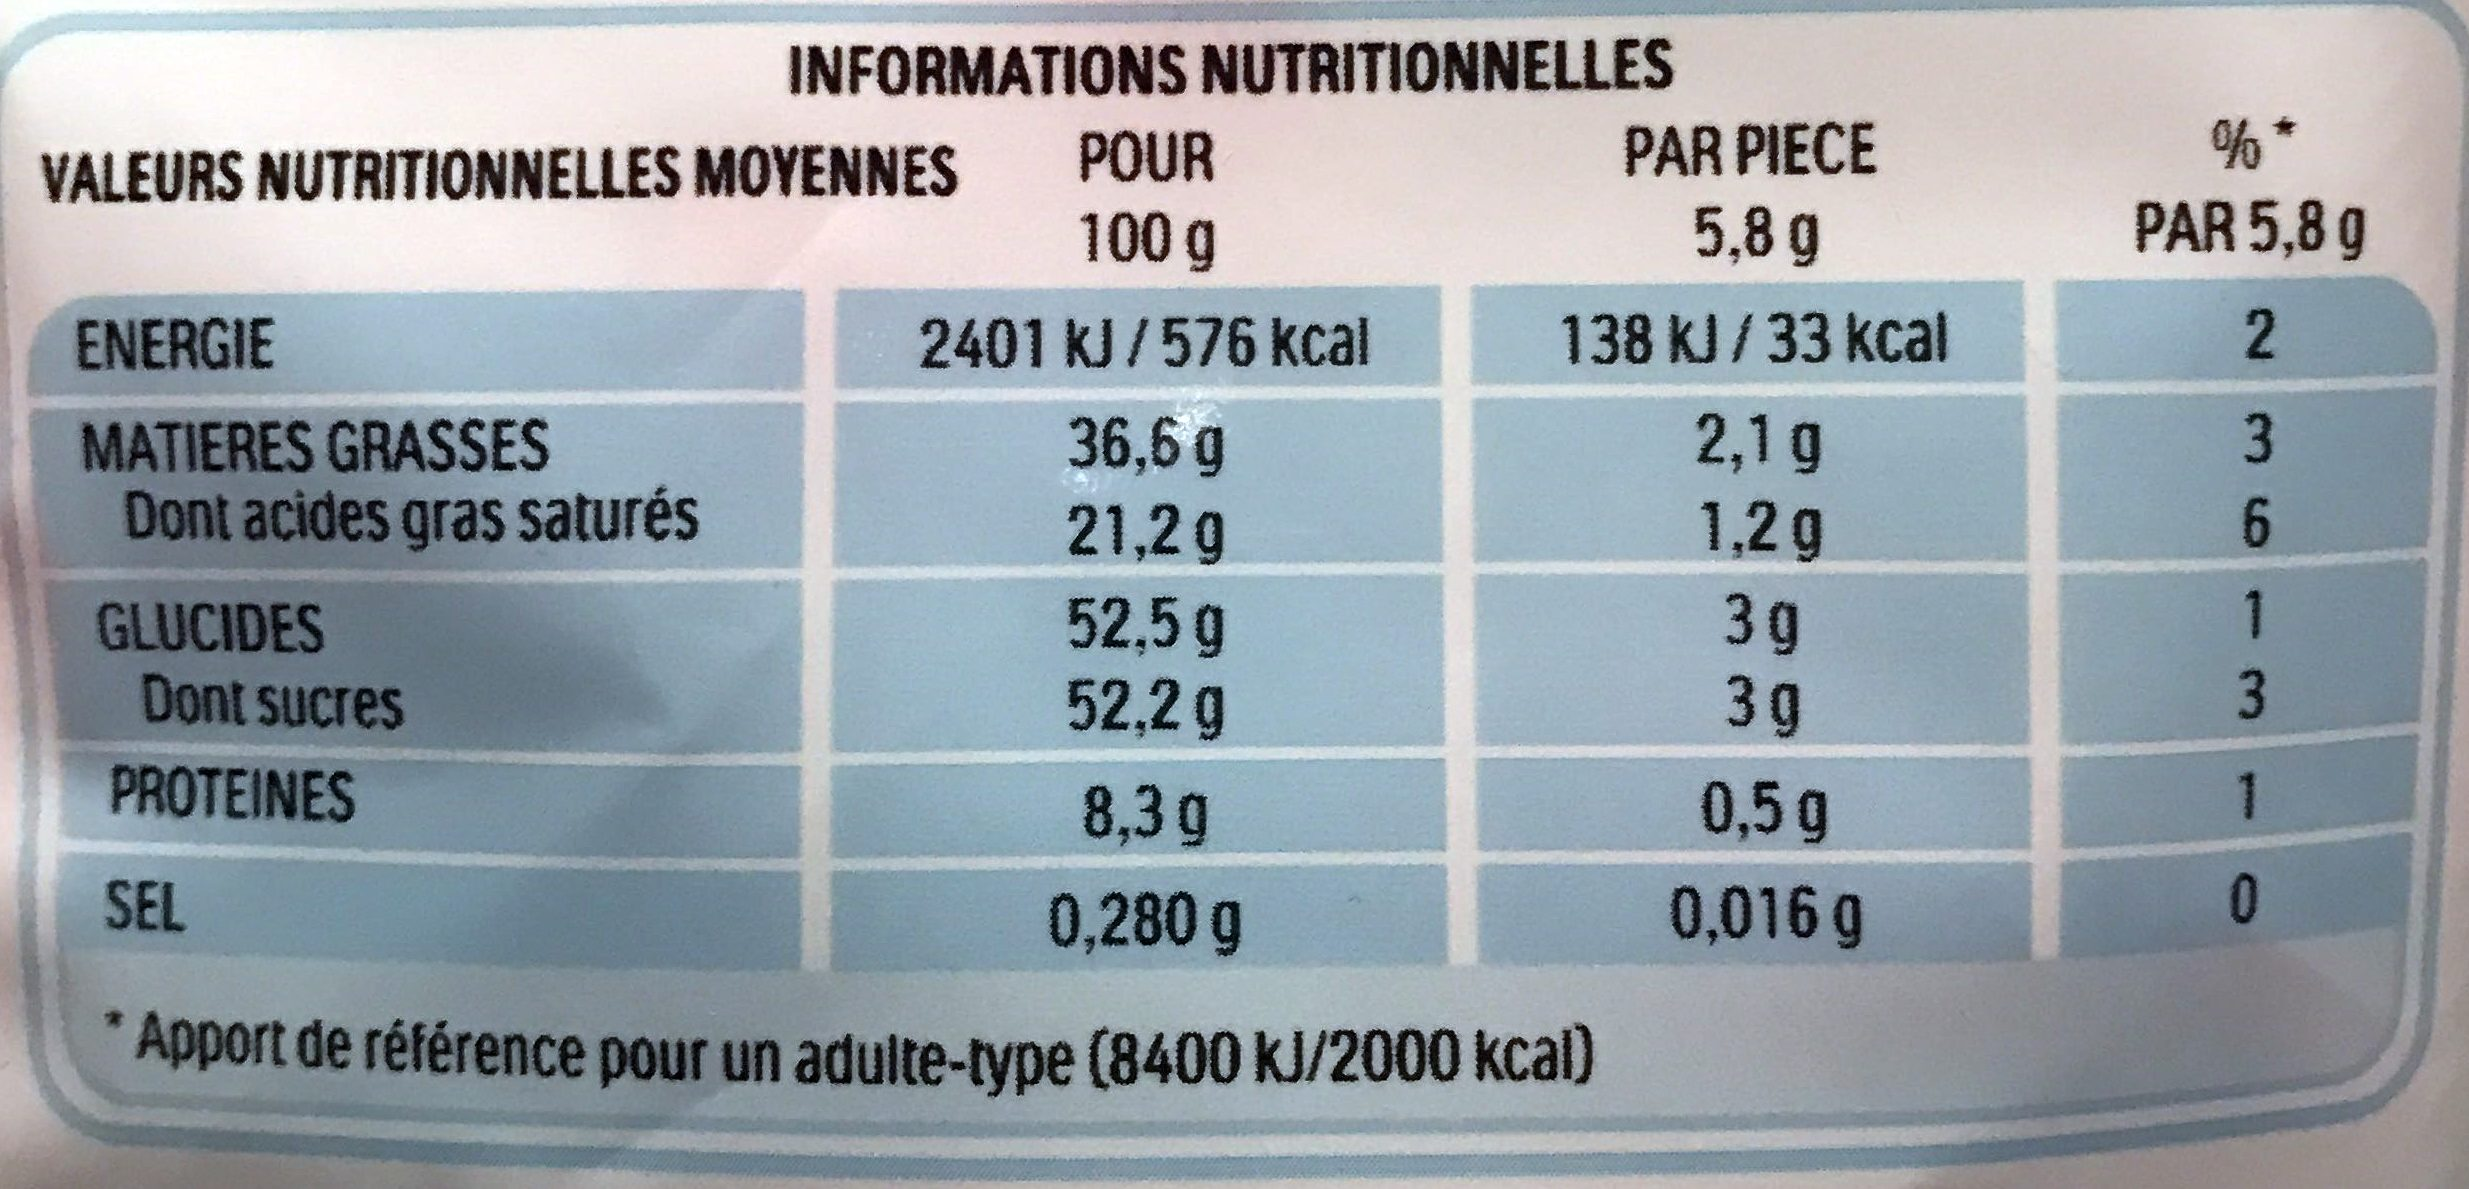 Kinder schokobons sachet de - Nutrition facts - fr